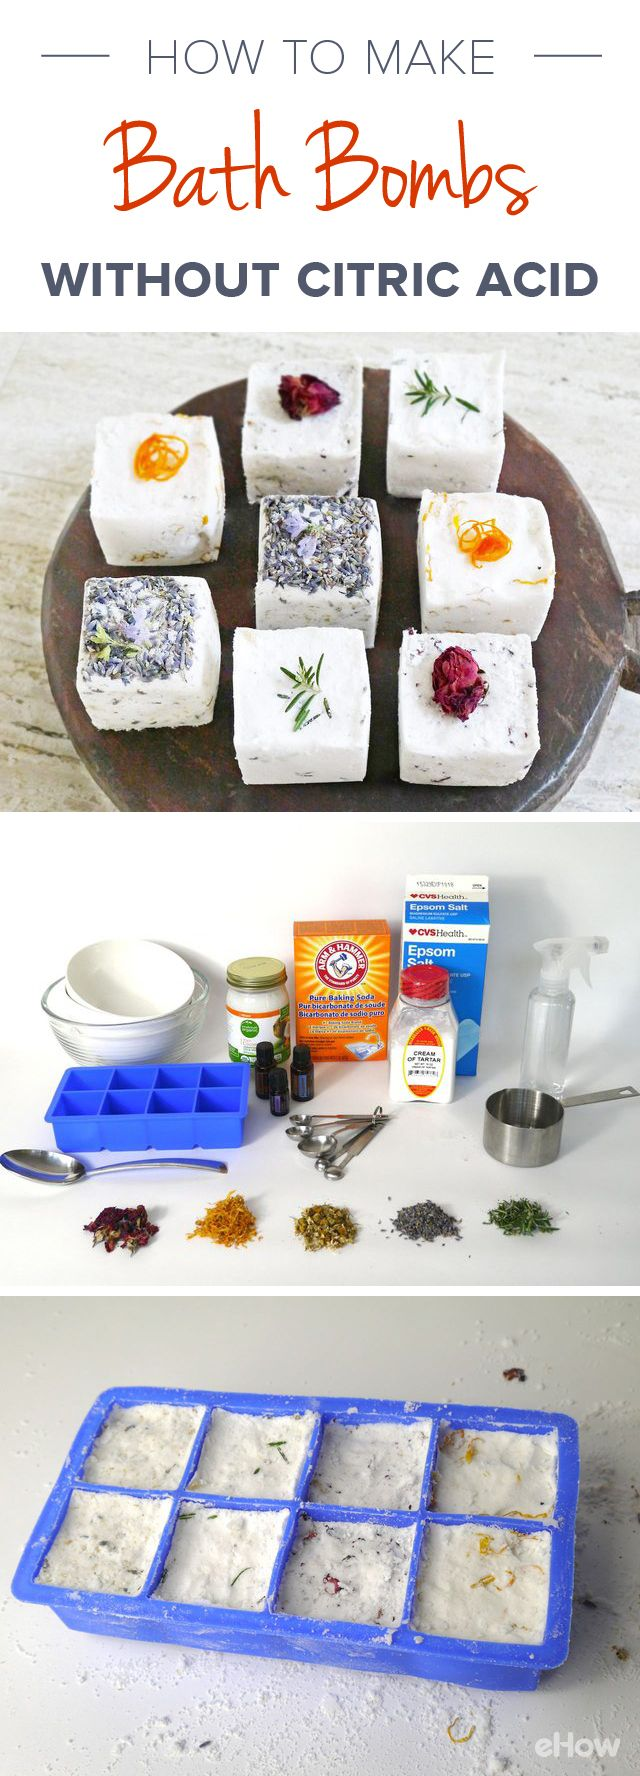 how to make lush bath bombs without citric acid